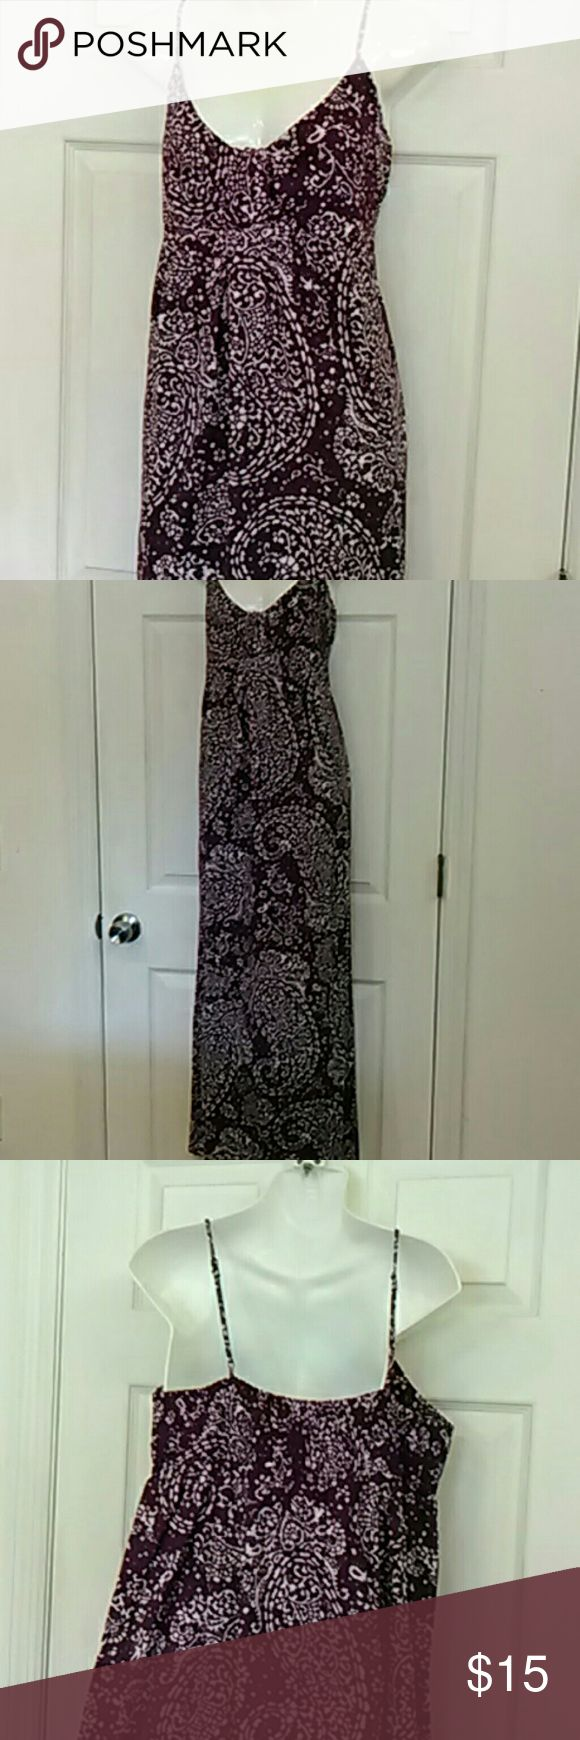 Purple maxi dress cotton woven Cute summer maxi dress!  Purple and white woven cotton, not knit.  Smocking in the back for a comfortable fit and adjustable spaghetti straps.  Fabric still feels a bit stiff, like new.  I believe  I this may be new and unworn.  Very  nice!  From Target. Merona Dresses Maxi